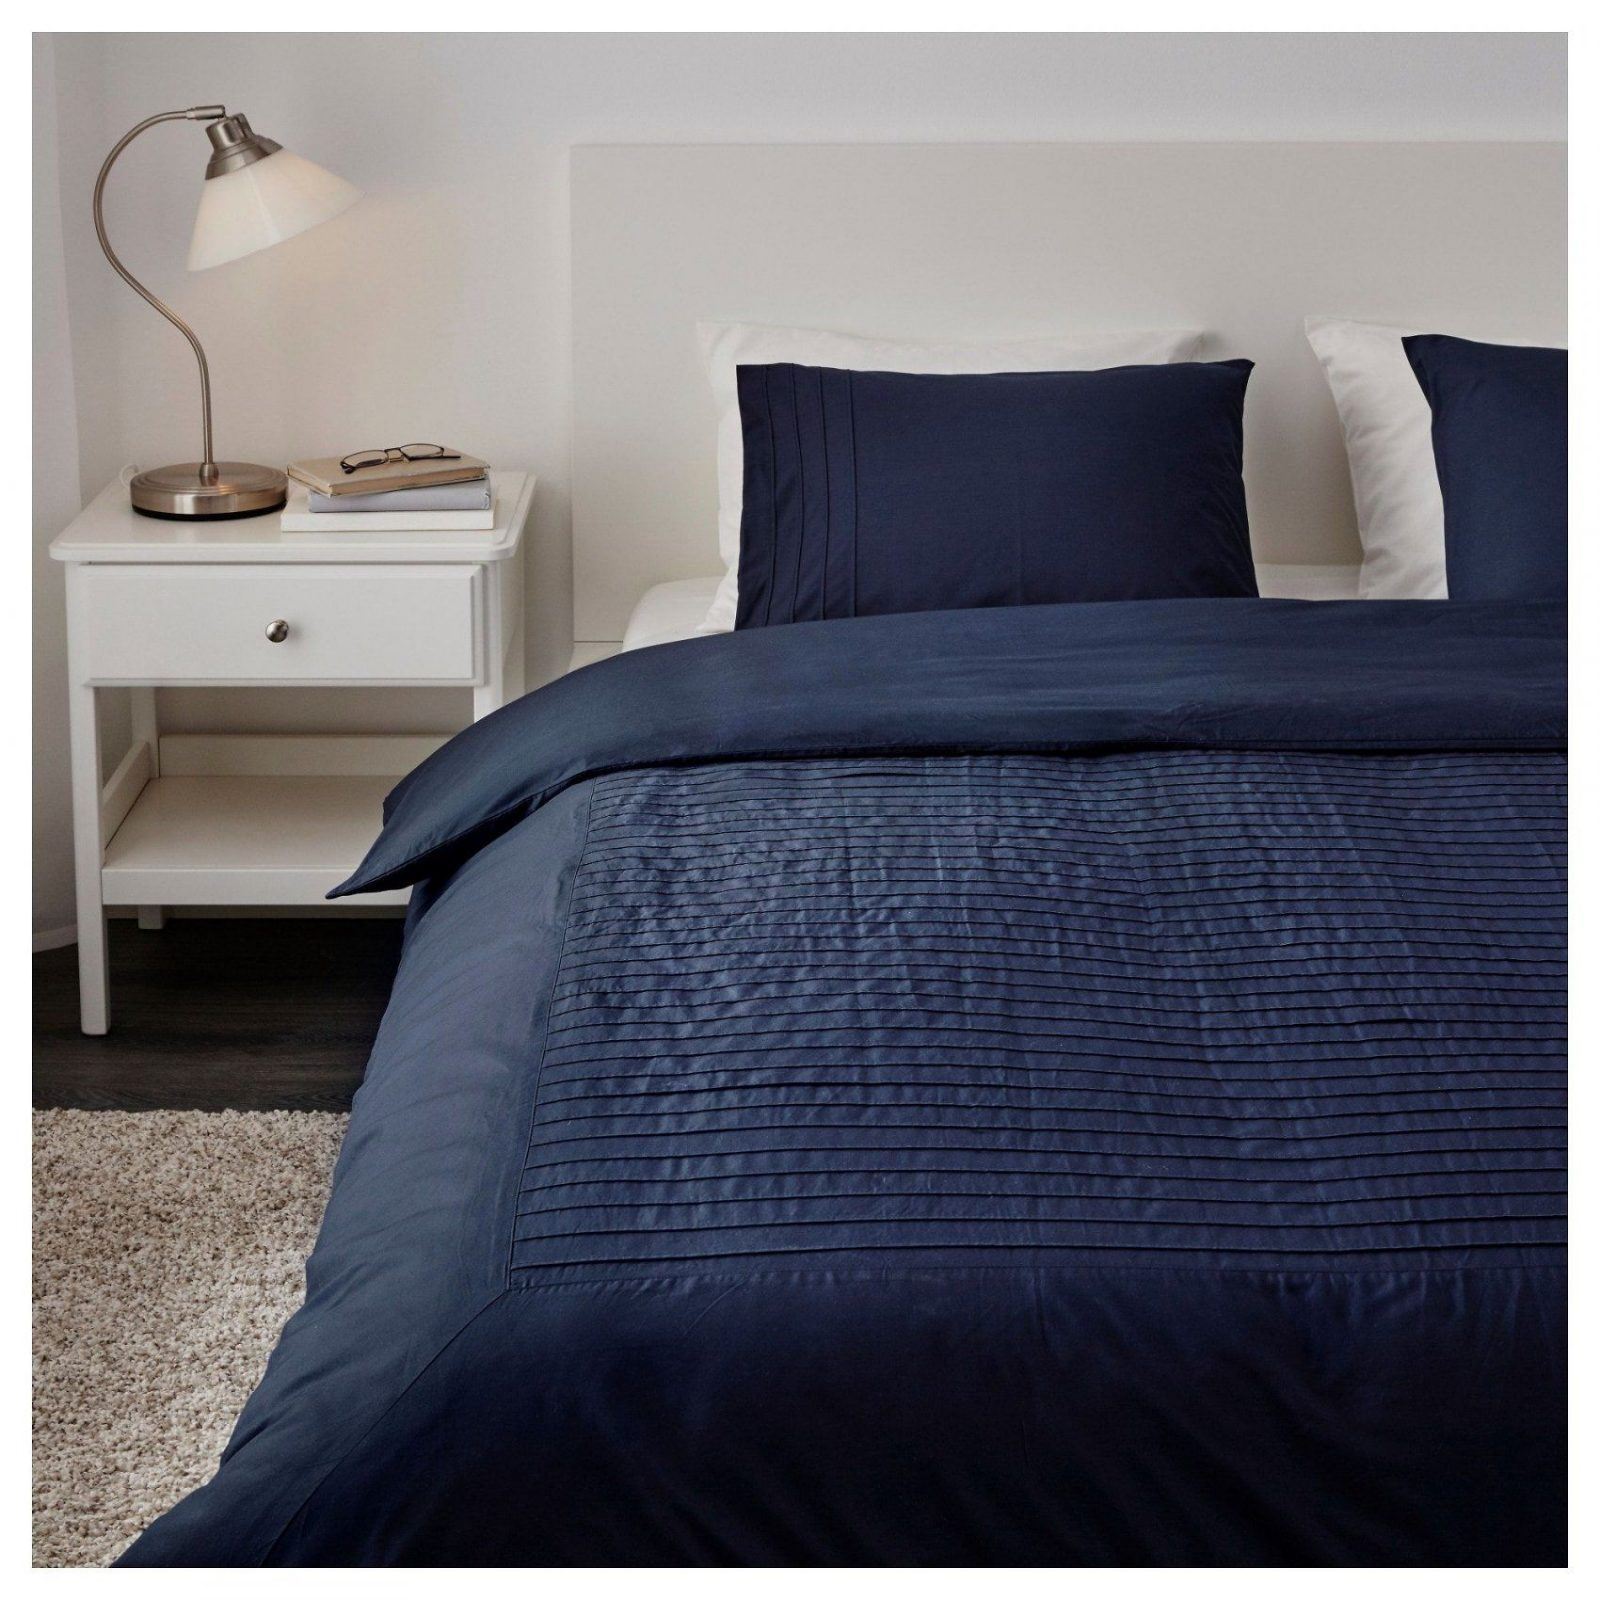 Bettwäsche 200x200 Ikea Navy Blue Duvet Covers Queen Inspirational Ikea Bettwäsche 200200